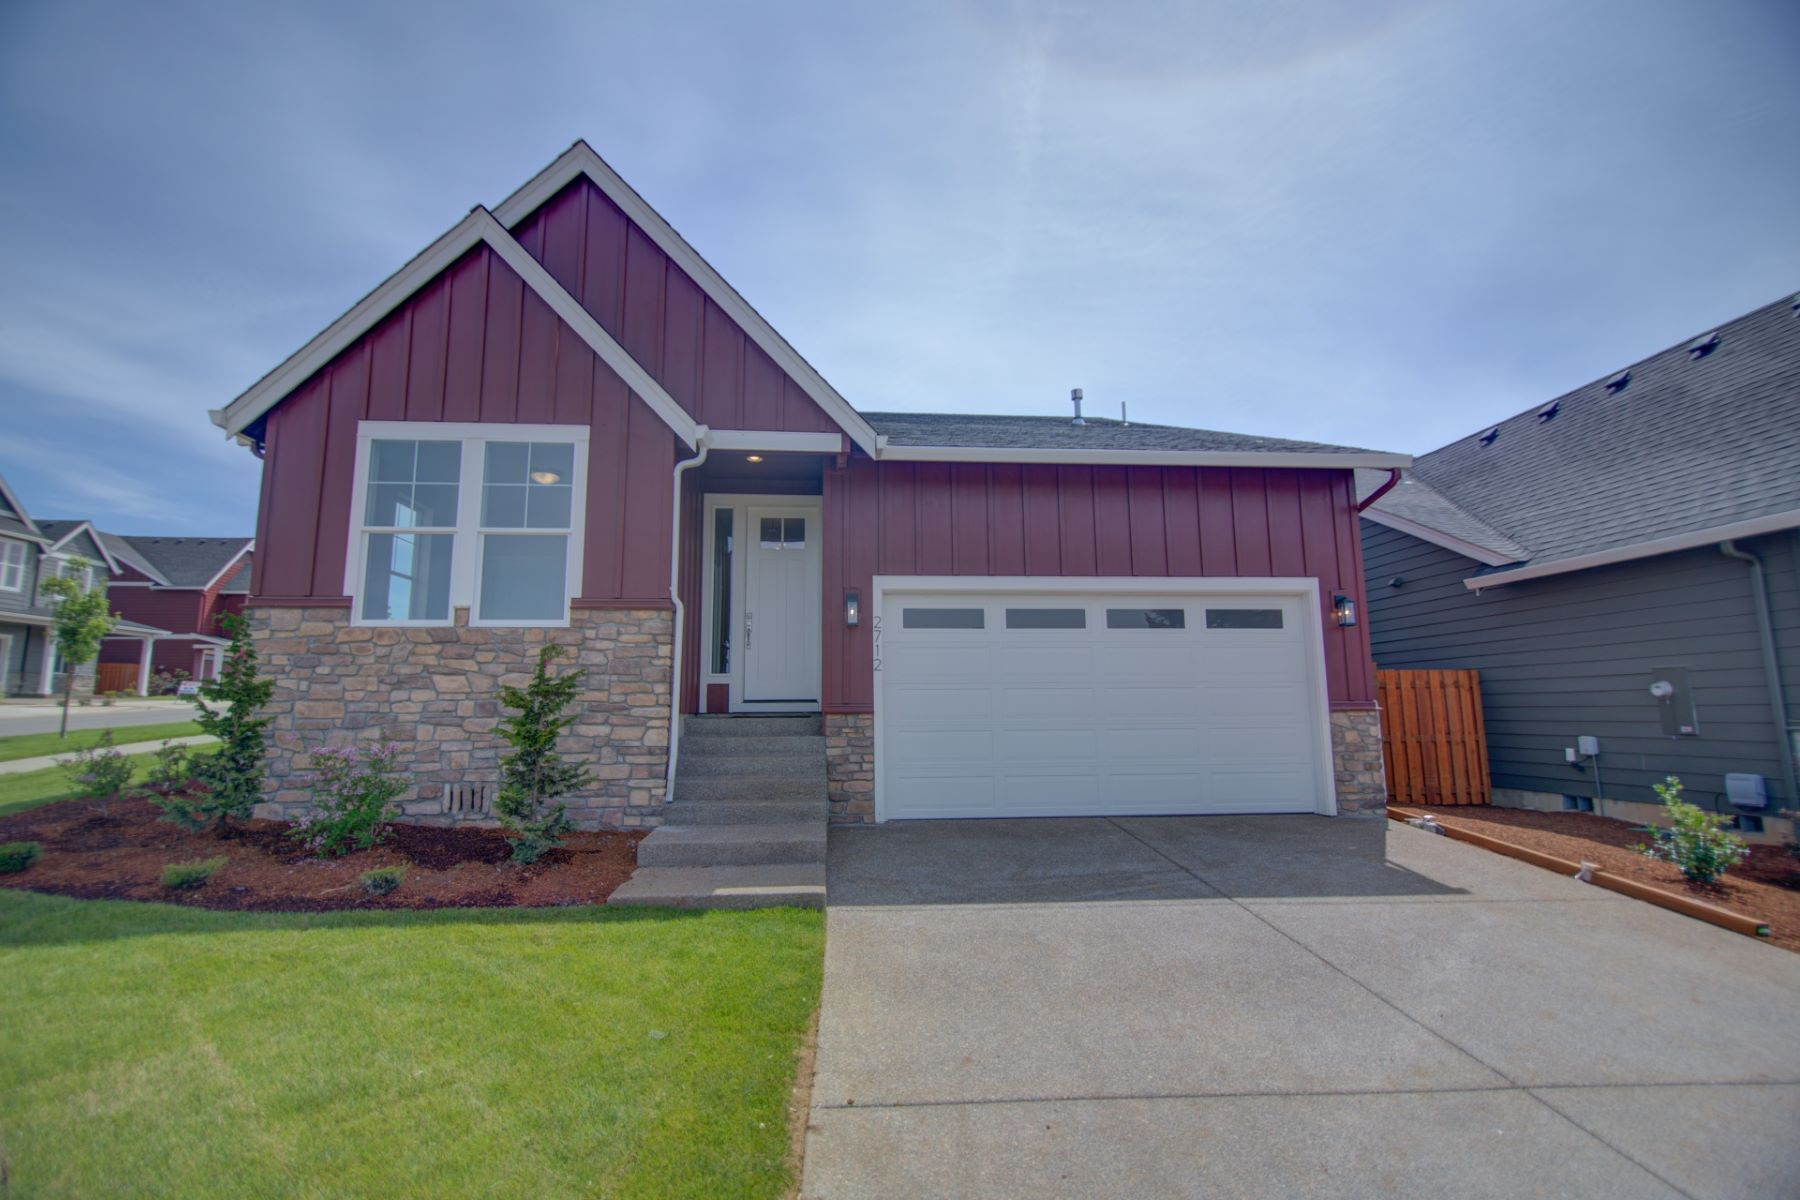 Single Family Homes for Active at 2712 NW Ethan Ave 2712 Ethan Ave NW (BCH 40) Salem, Oregon 97304 United States